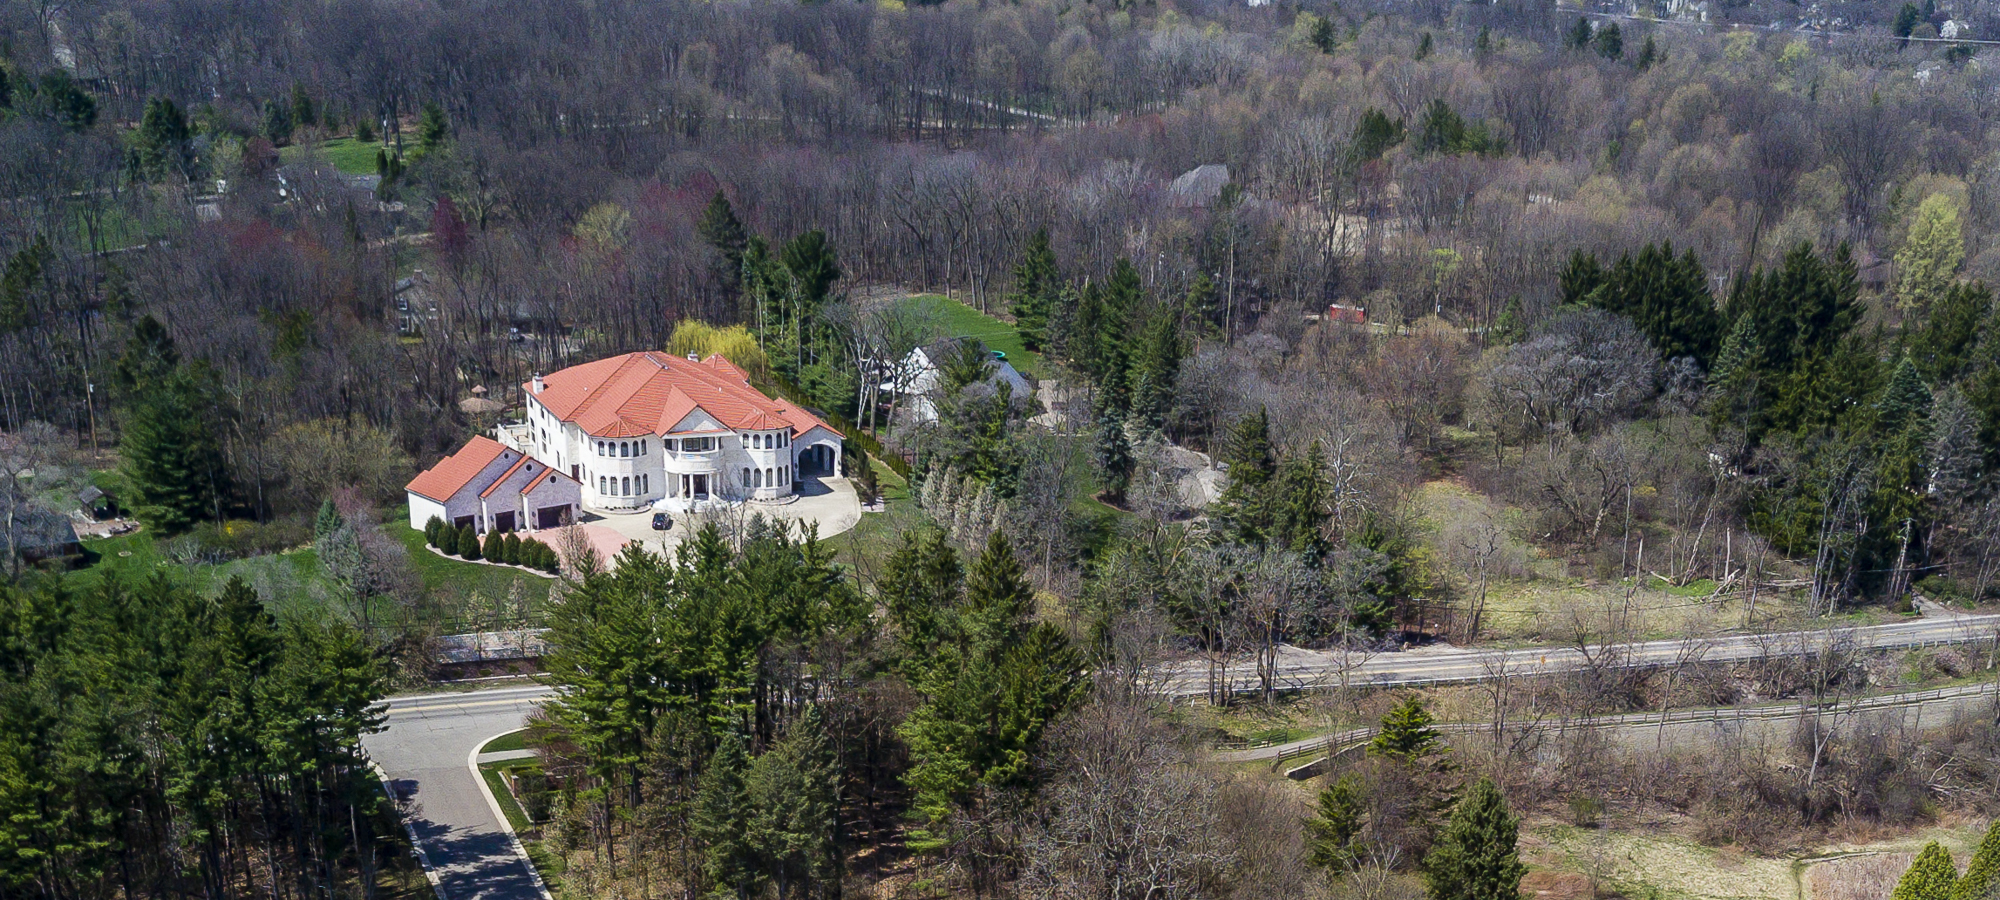 5 Uses for Aerial Photography in Real Estate